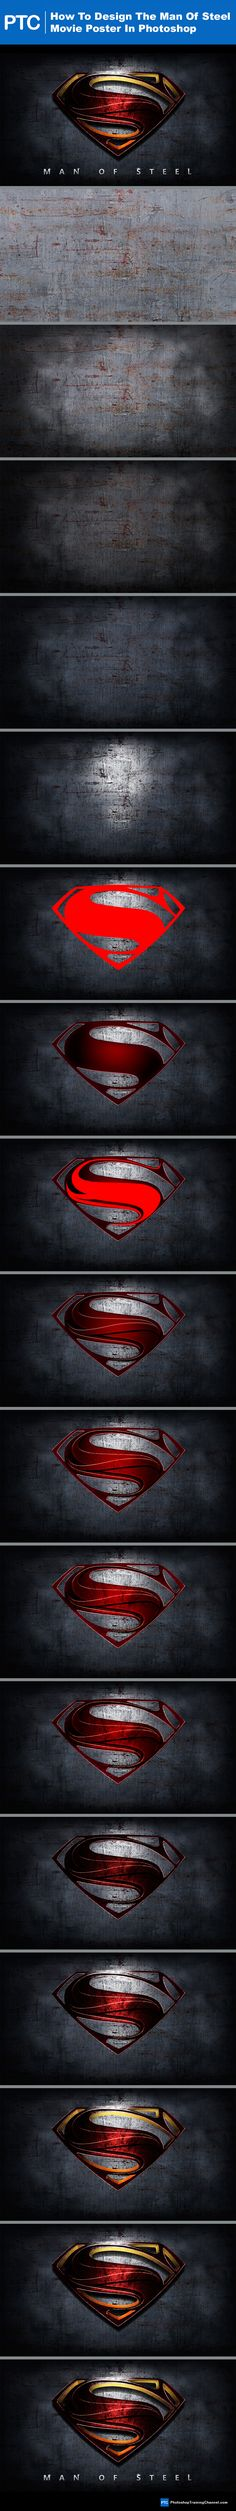 Design The Superman Man Of Steel Movie Poster In Photoshop. #Photoshop #Tutorial #Graphic #Design http://photoshoptrainingchaneel.com